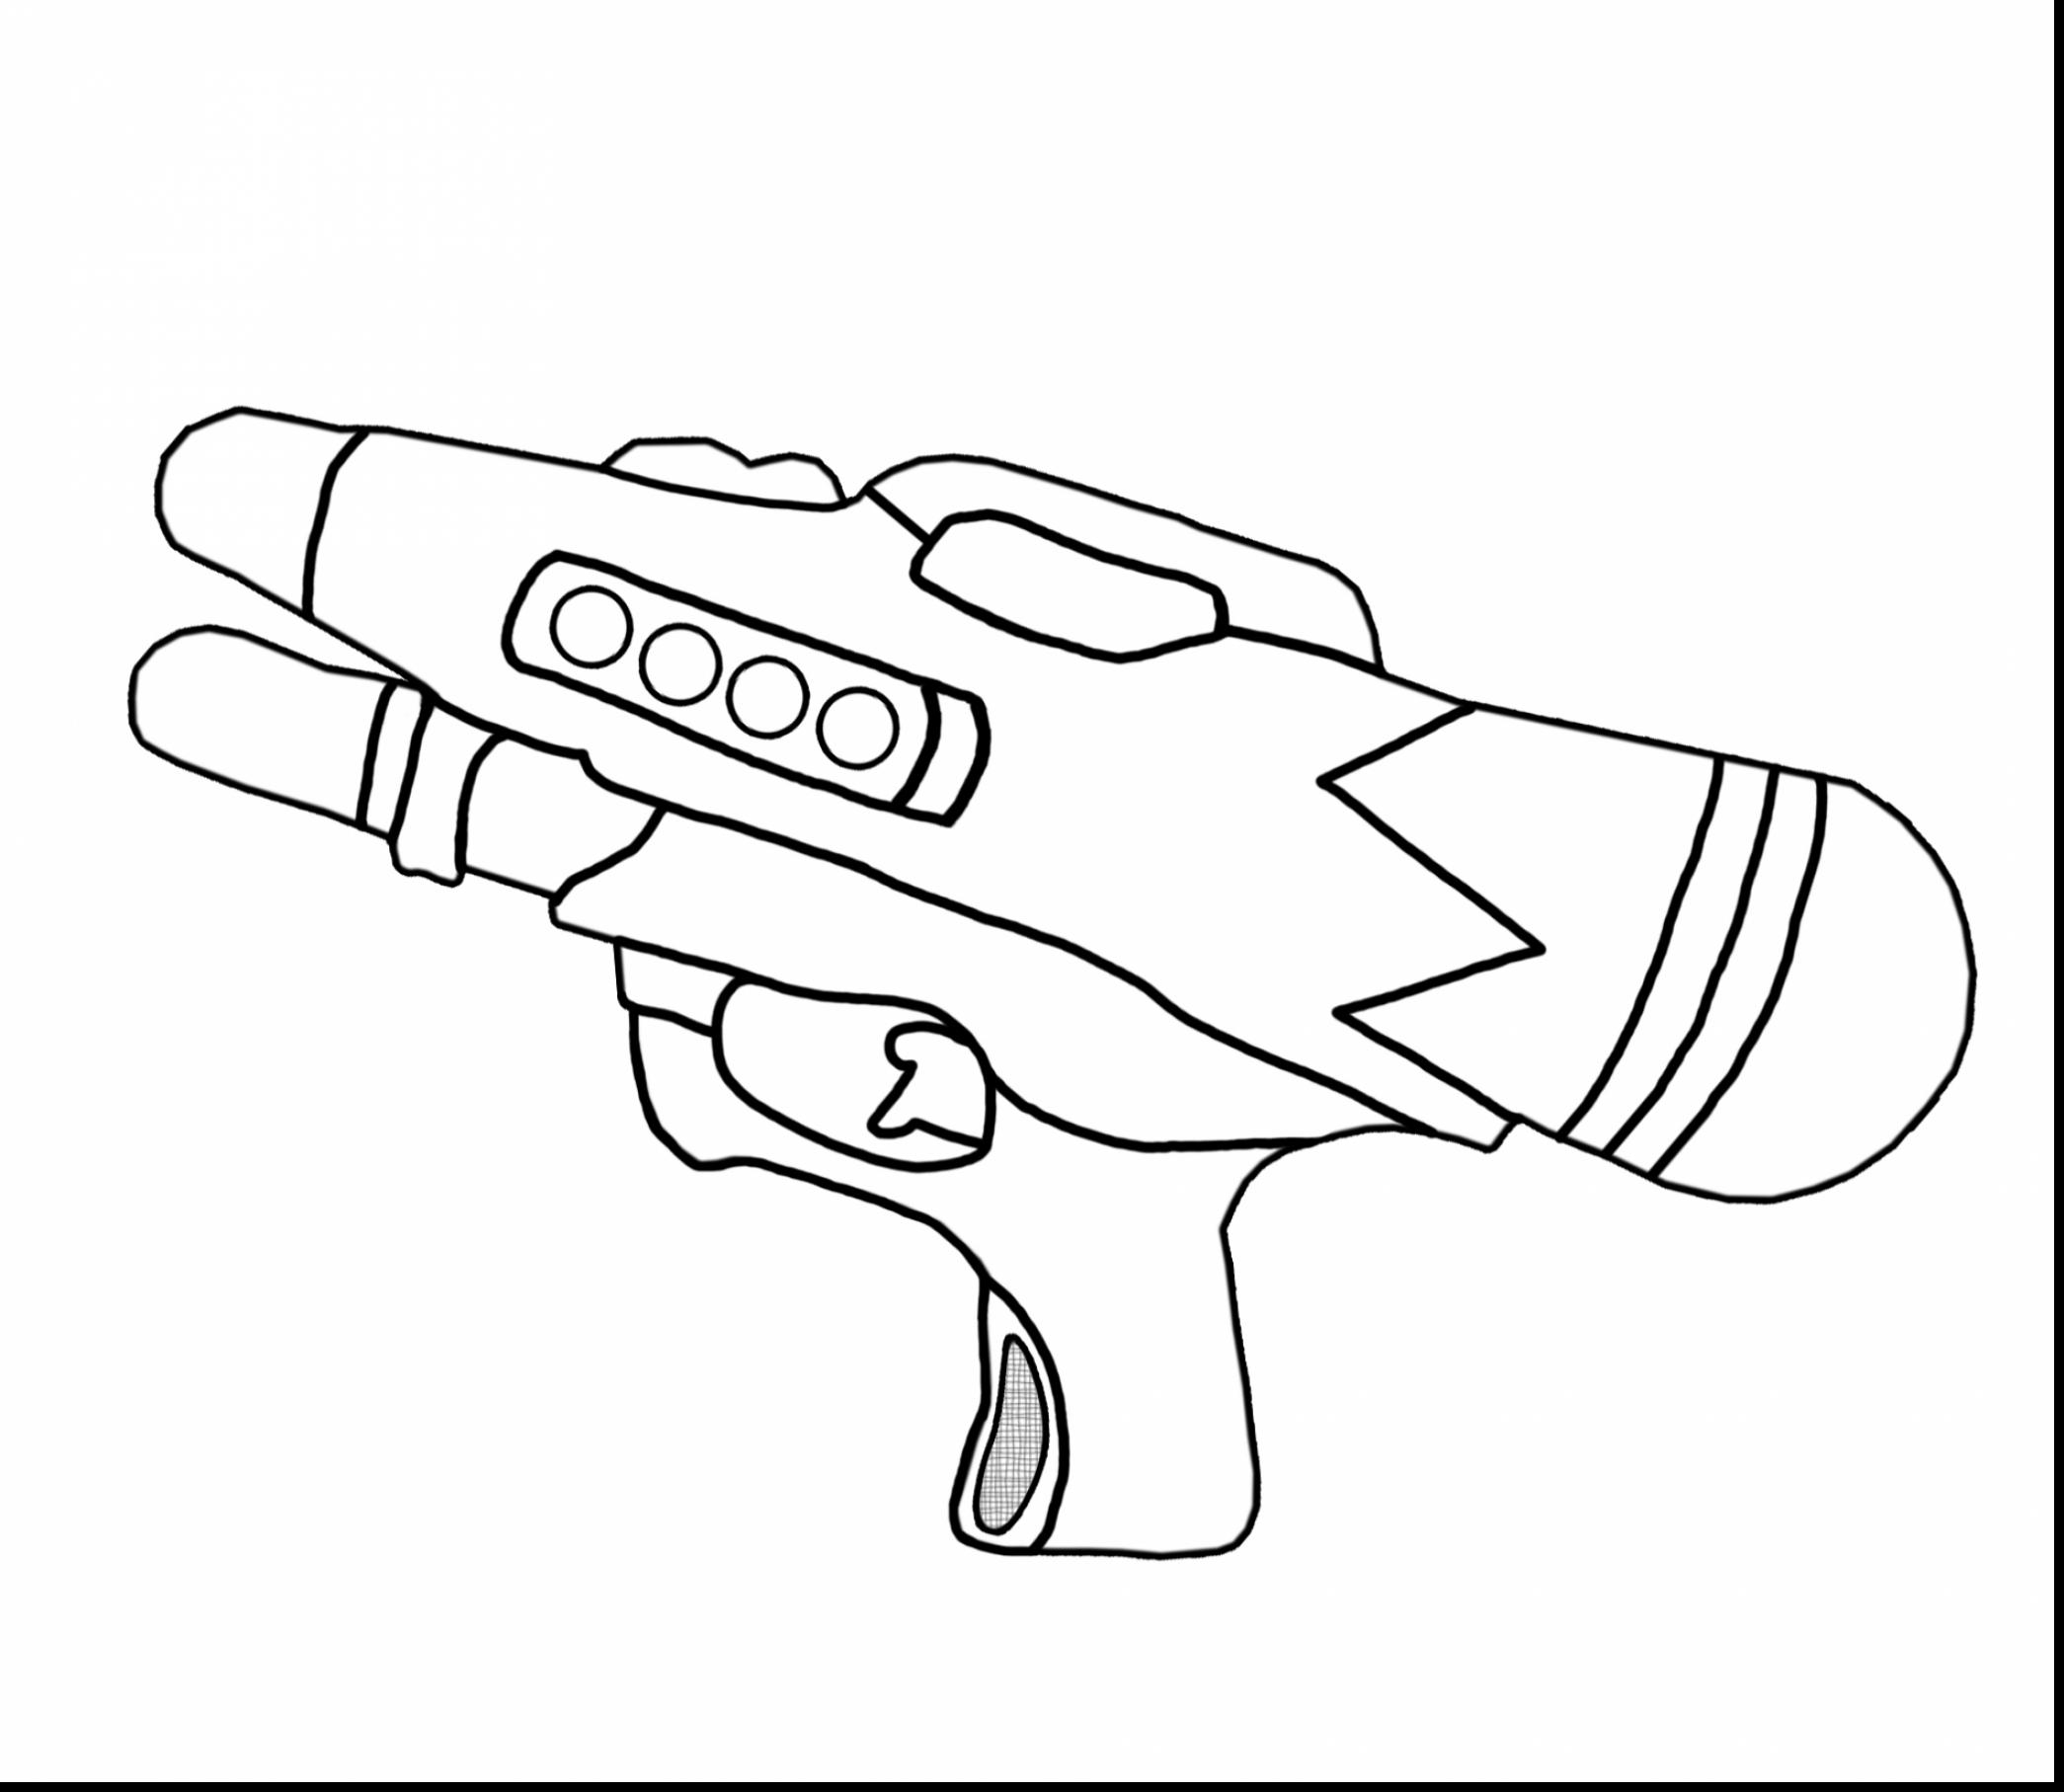 2090x1815 Unique Water Gun Coloring Pages Gallery Printable Coloring Sheet